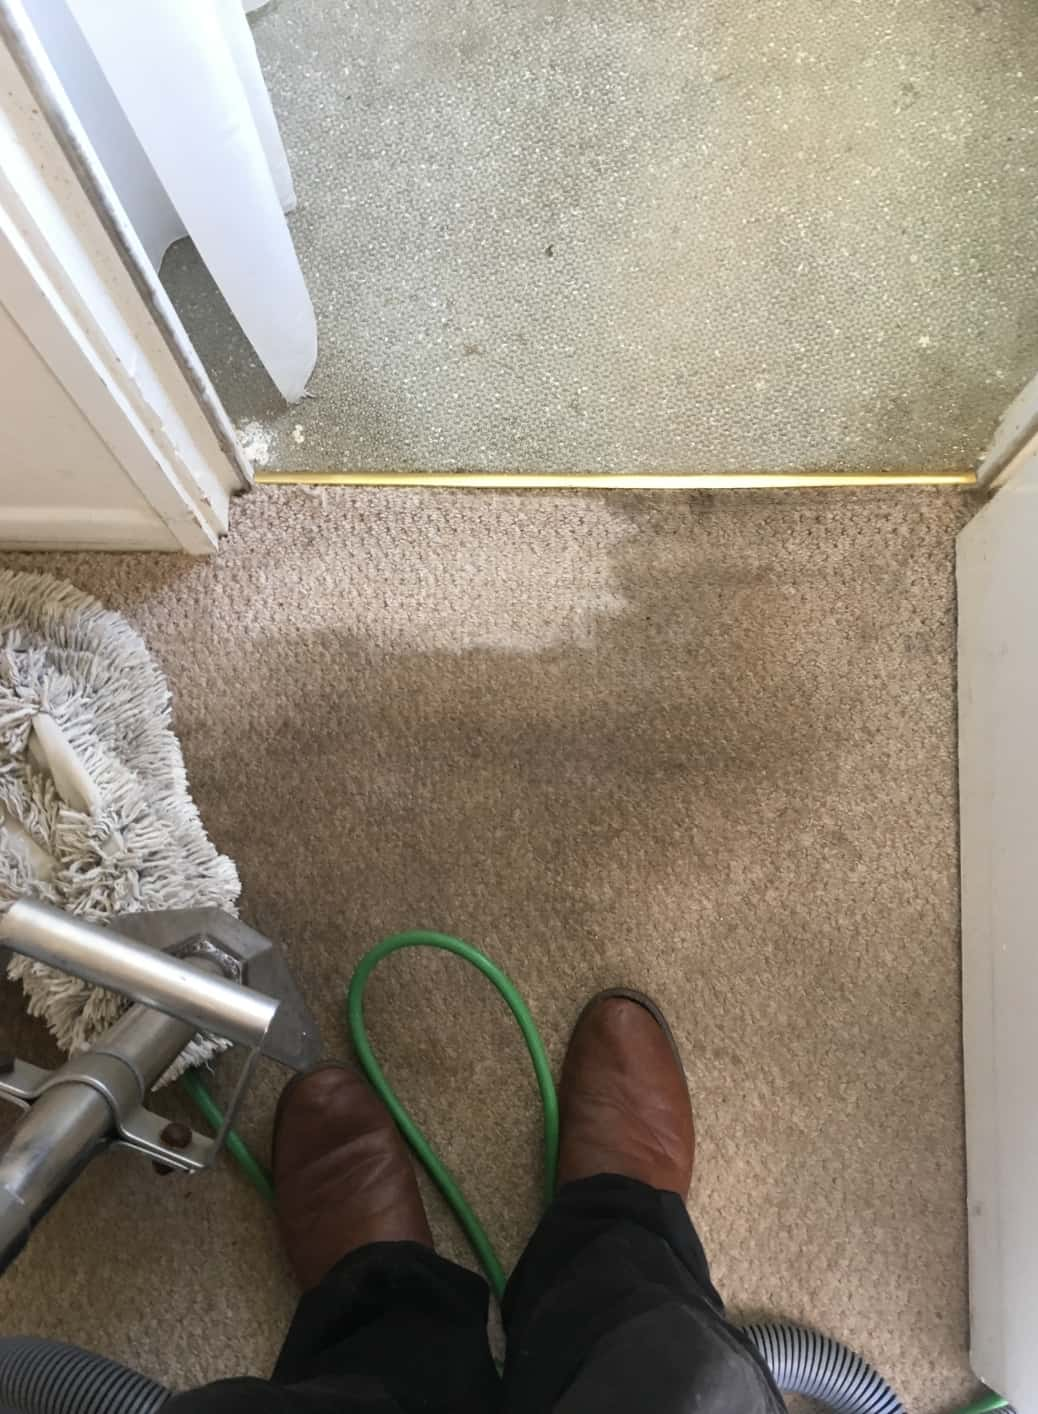 Carpet Cleaning Before & After Photos 12